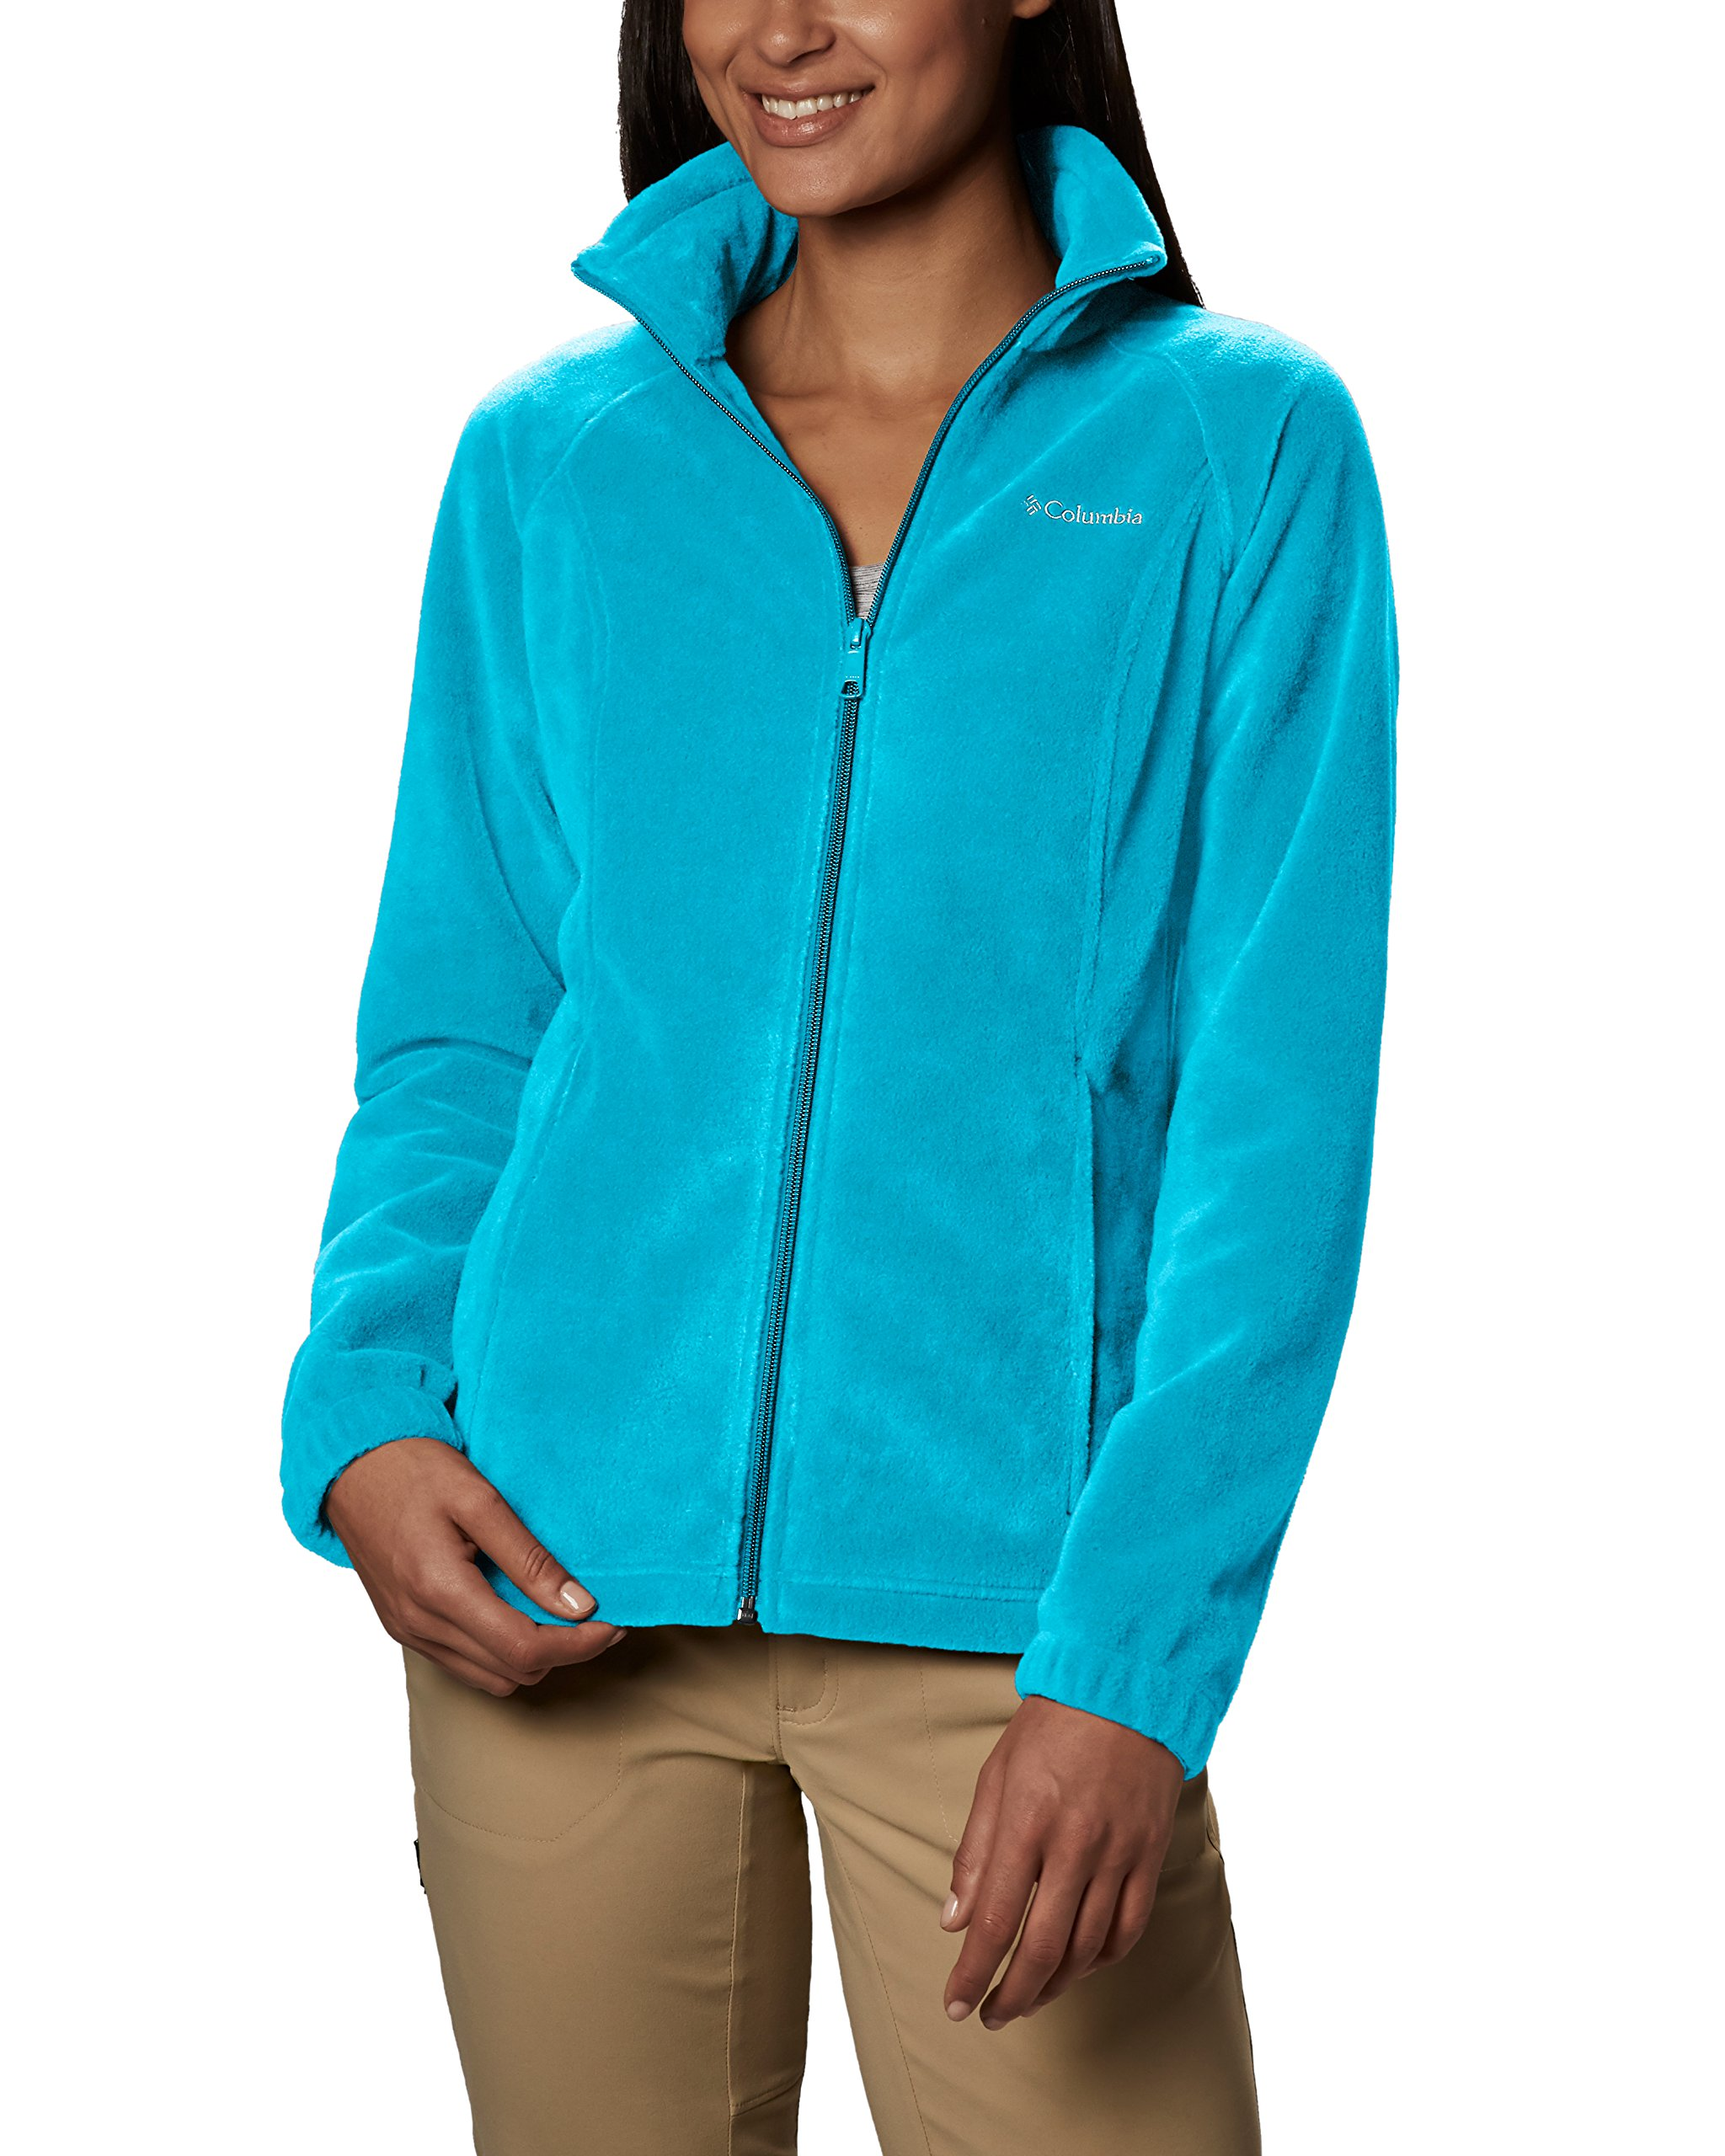 Columbia Women's Benton Springs Full Zip Jacket, Soft Fleece with Classic Fit, Atoll, Small by Columbia